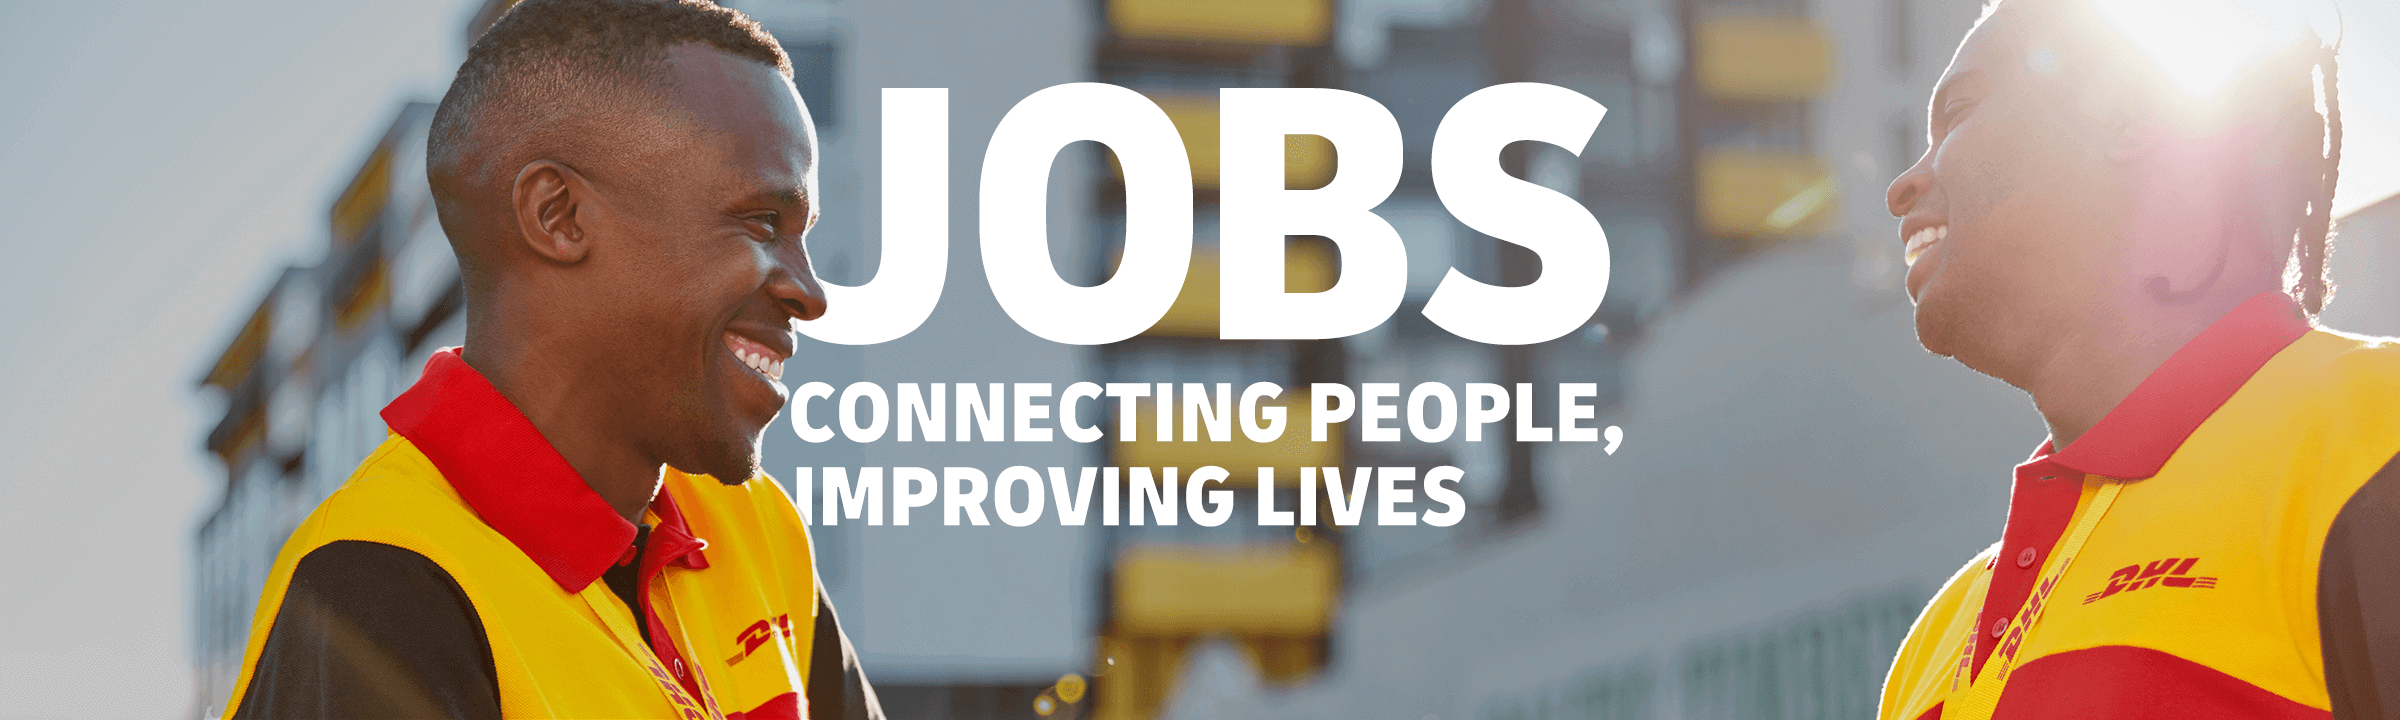 HEADER_JOBS_CONNECTING_PEOPLE_720x2400pxV3